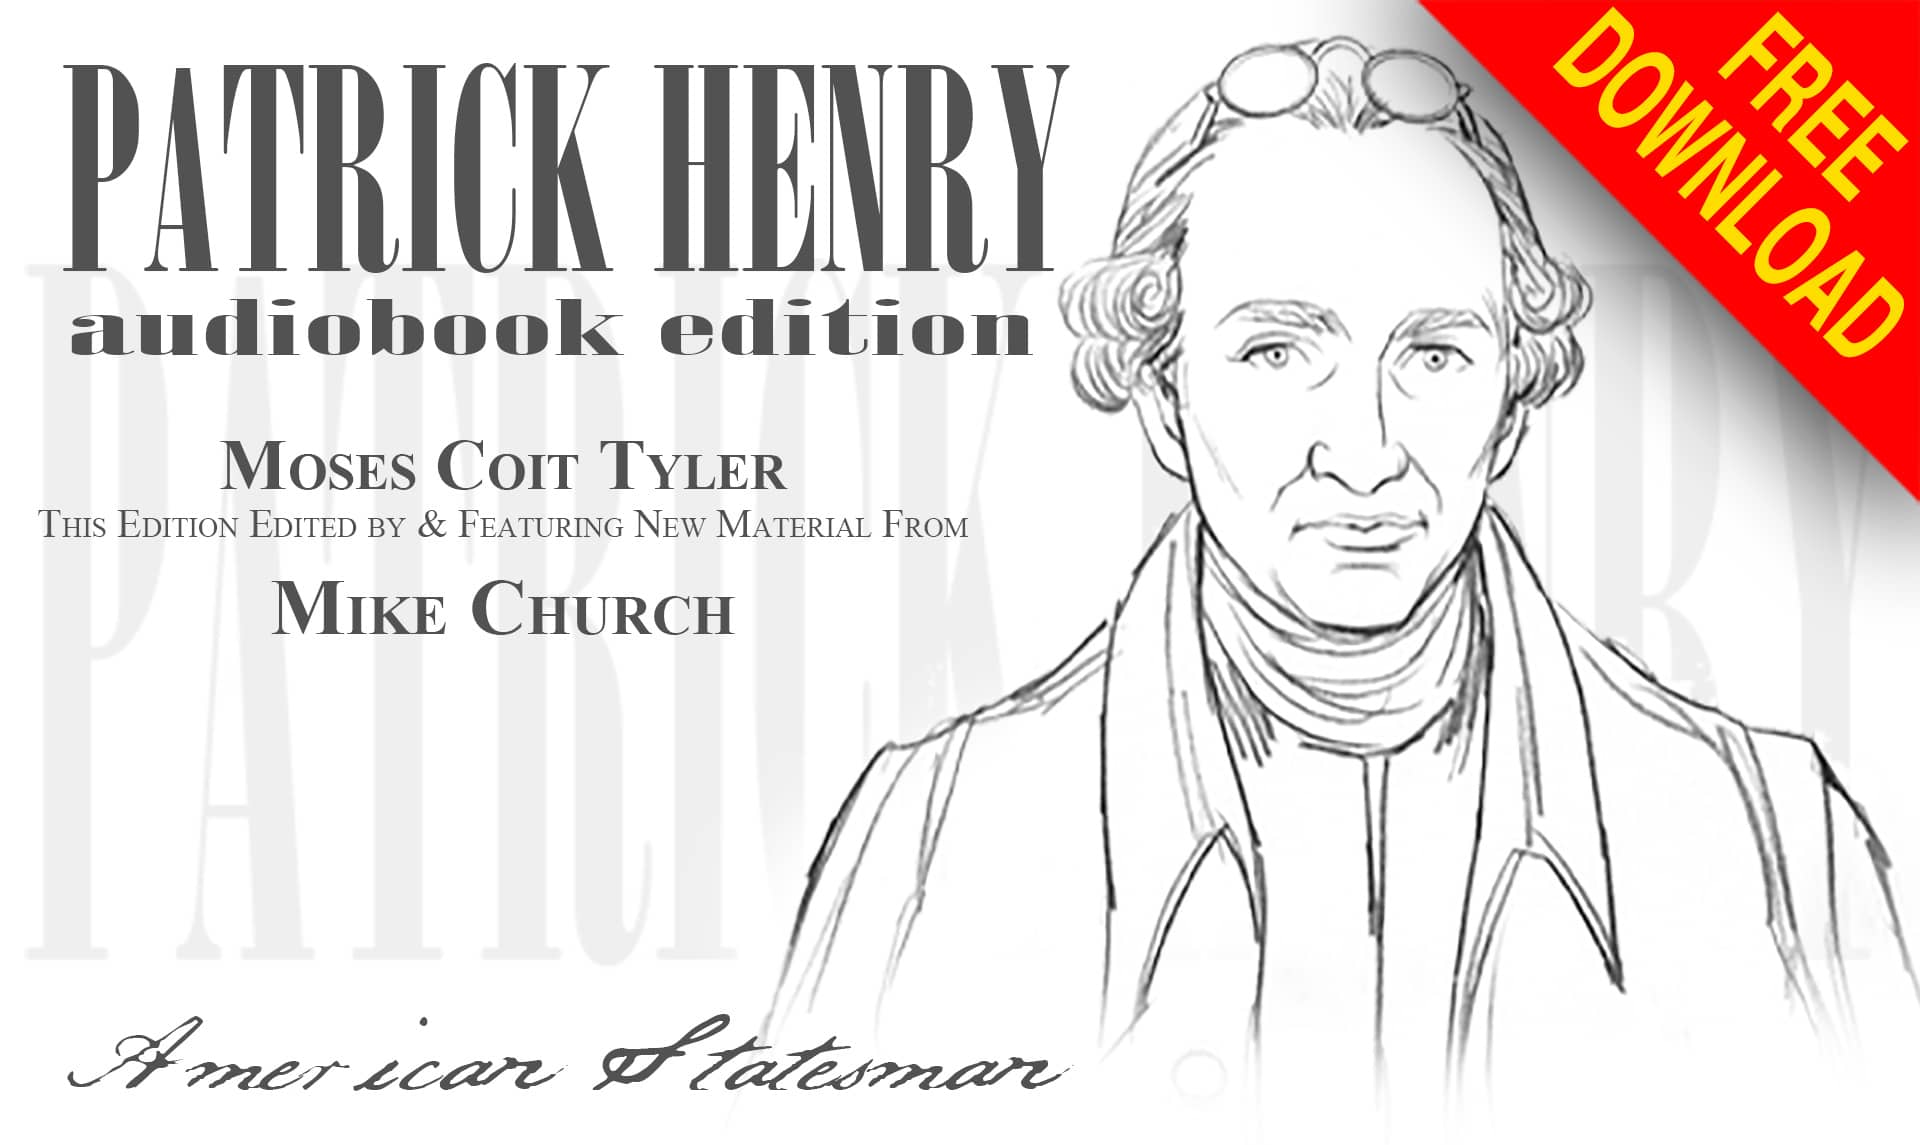 Become A Founders Pass Member & Take Patrick Henry Along With You-FREE!